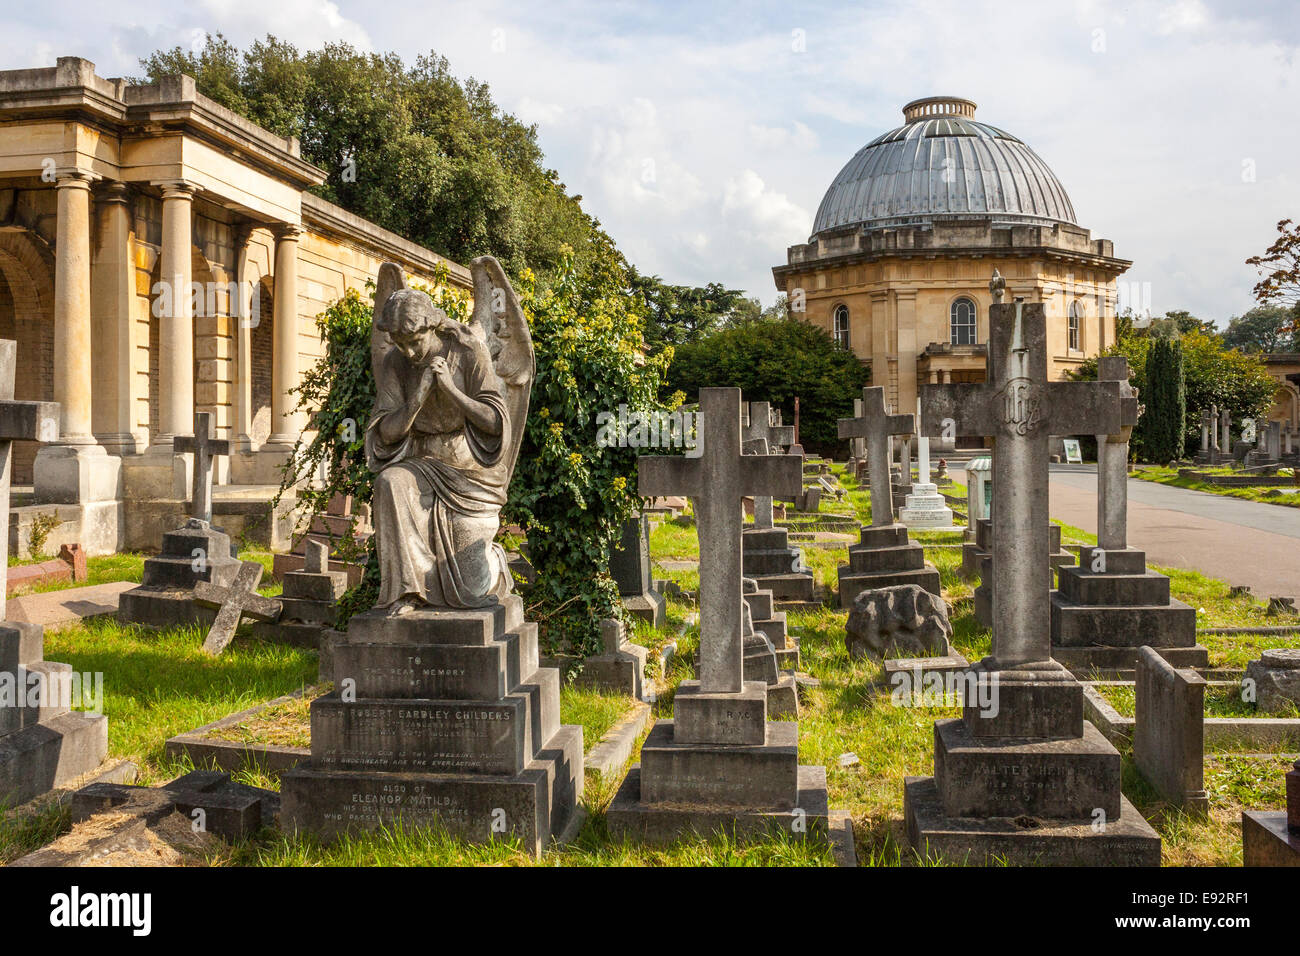 Anglican Chapel and Colonnade, Brompton Cemetery, London Stock Photo